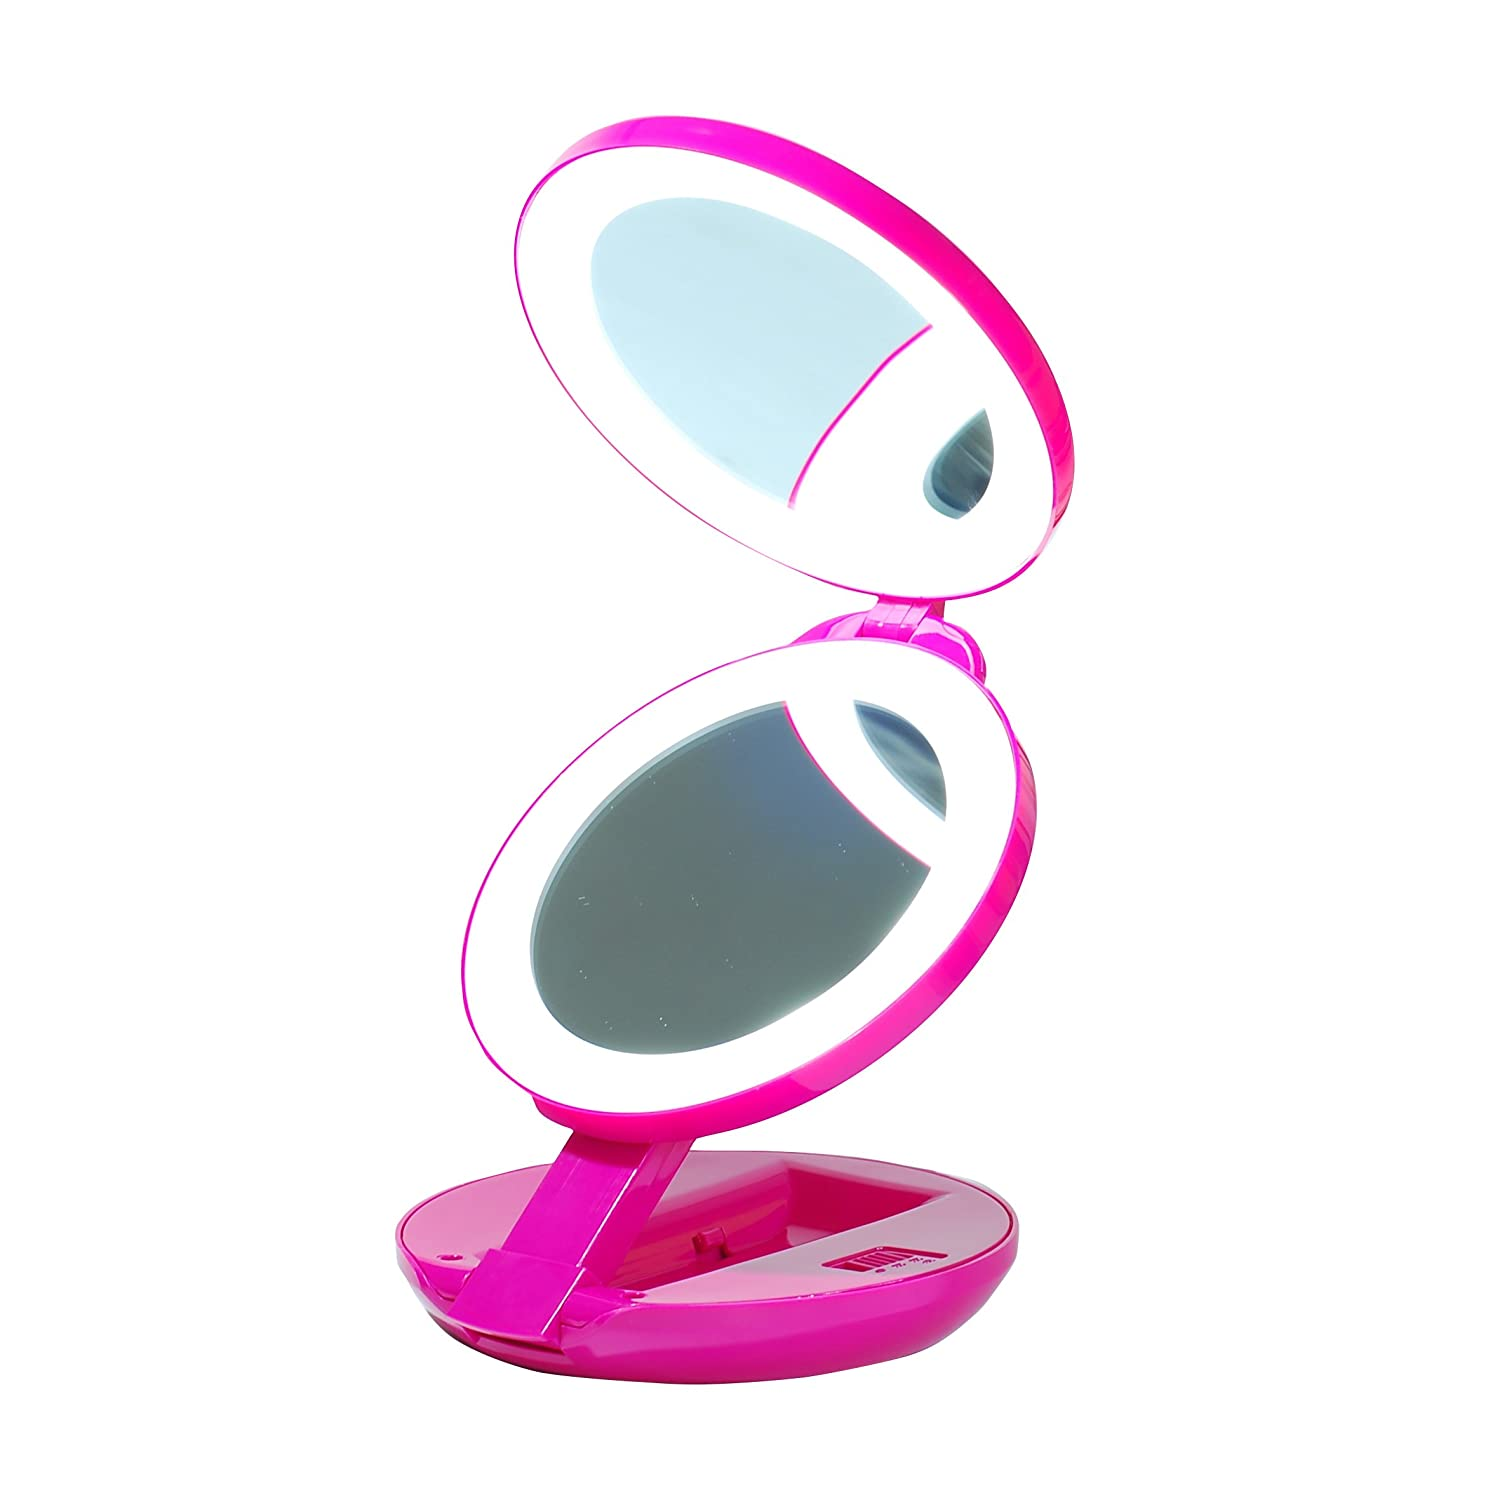 LED Lighted Travel Makeup Magnifying Mirror,Magnifies 10x and 1x, Luxury Double Side and Folding Pocket Vanity/Cosmetic Mirror (Pink) V & H Home Supplies